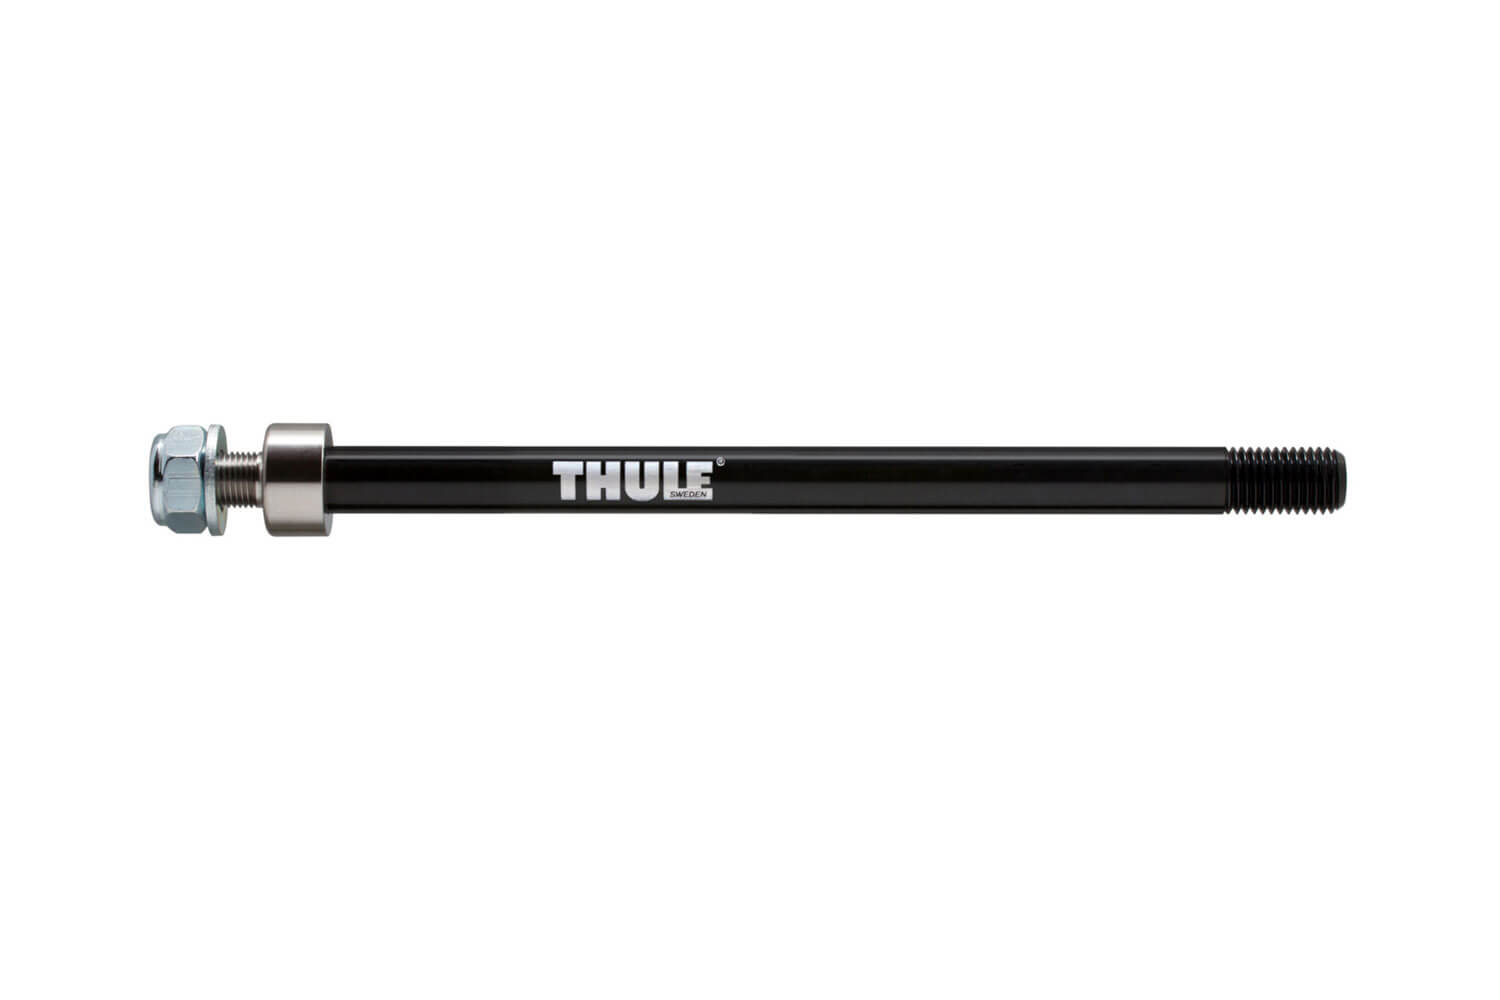 Thule Achsadapter Syntace M12x1.0 217-229 mm